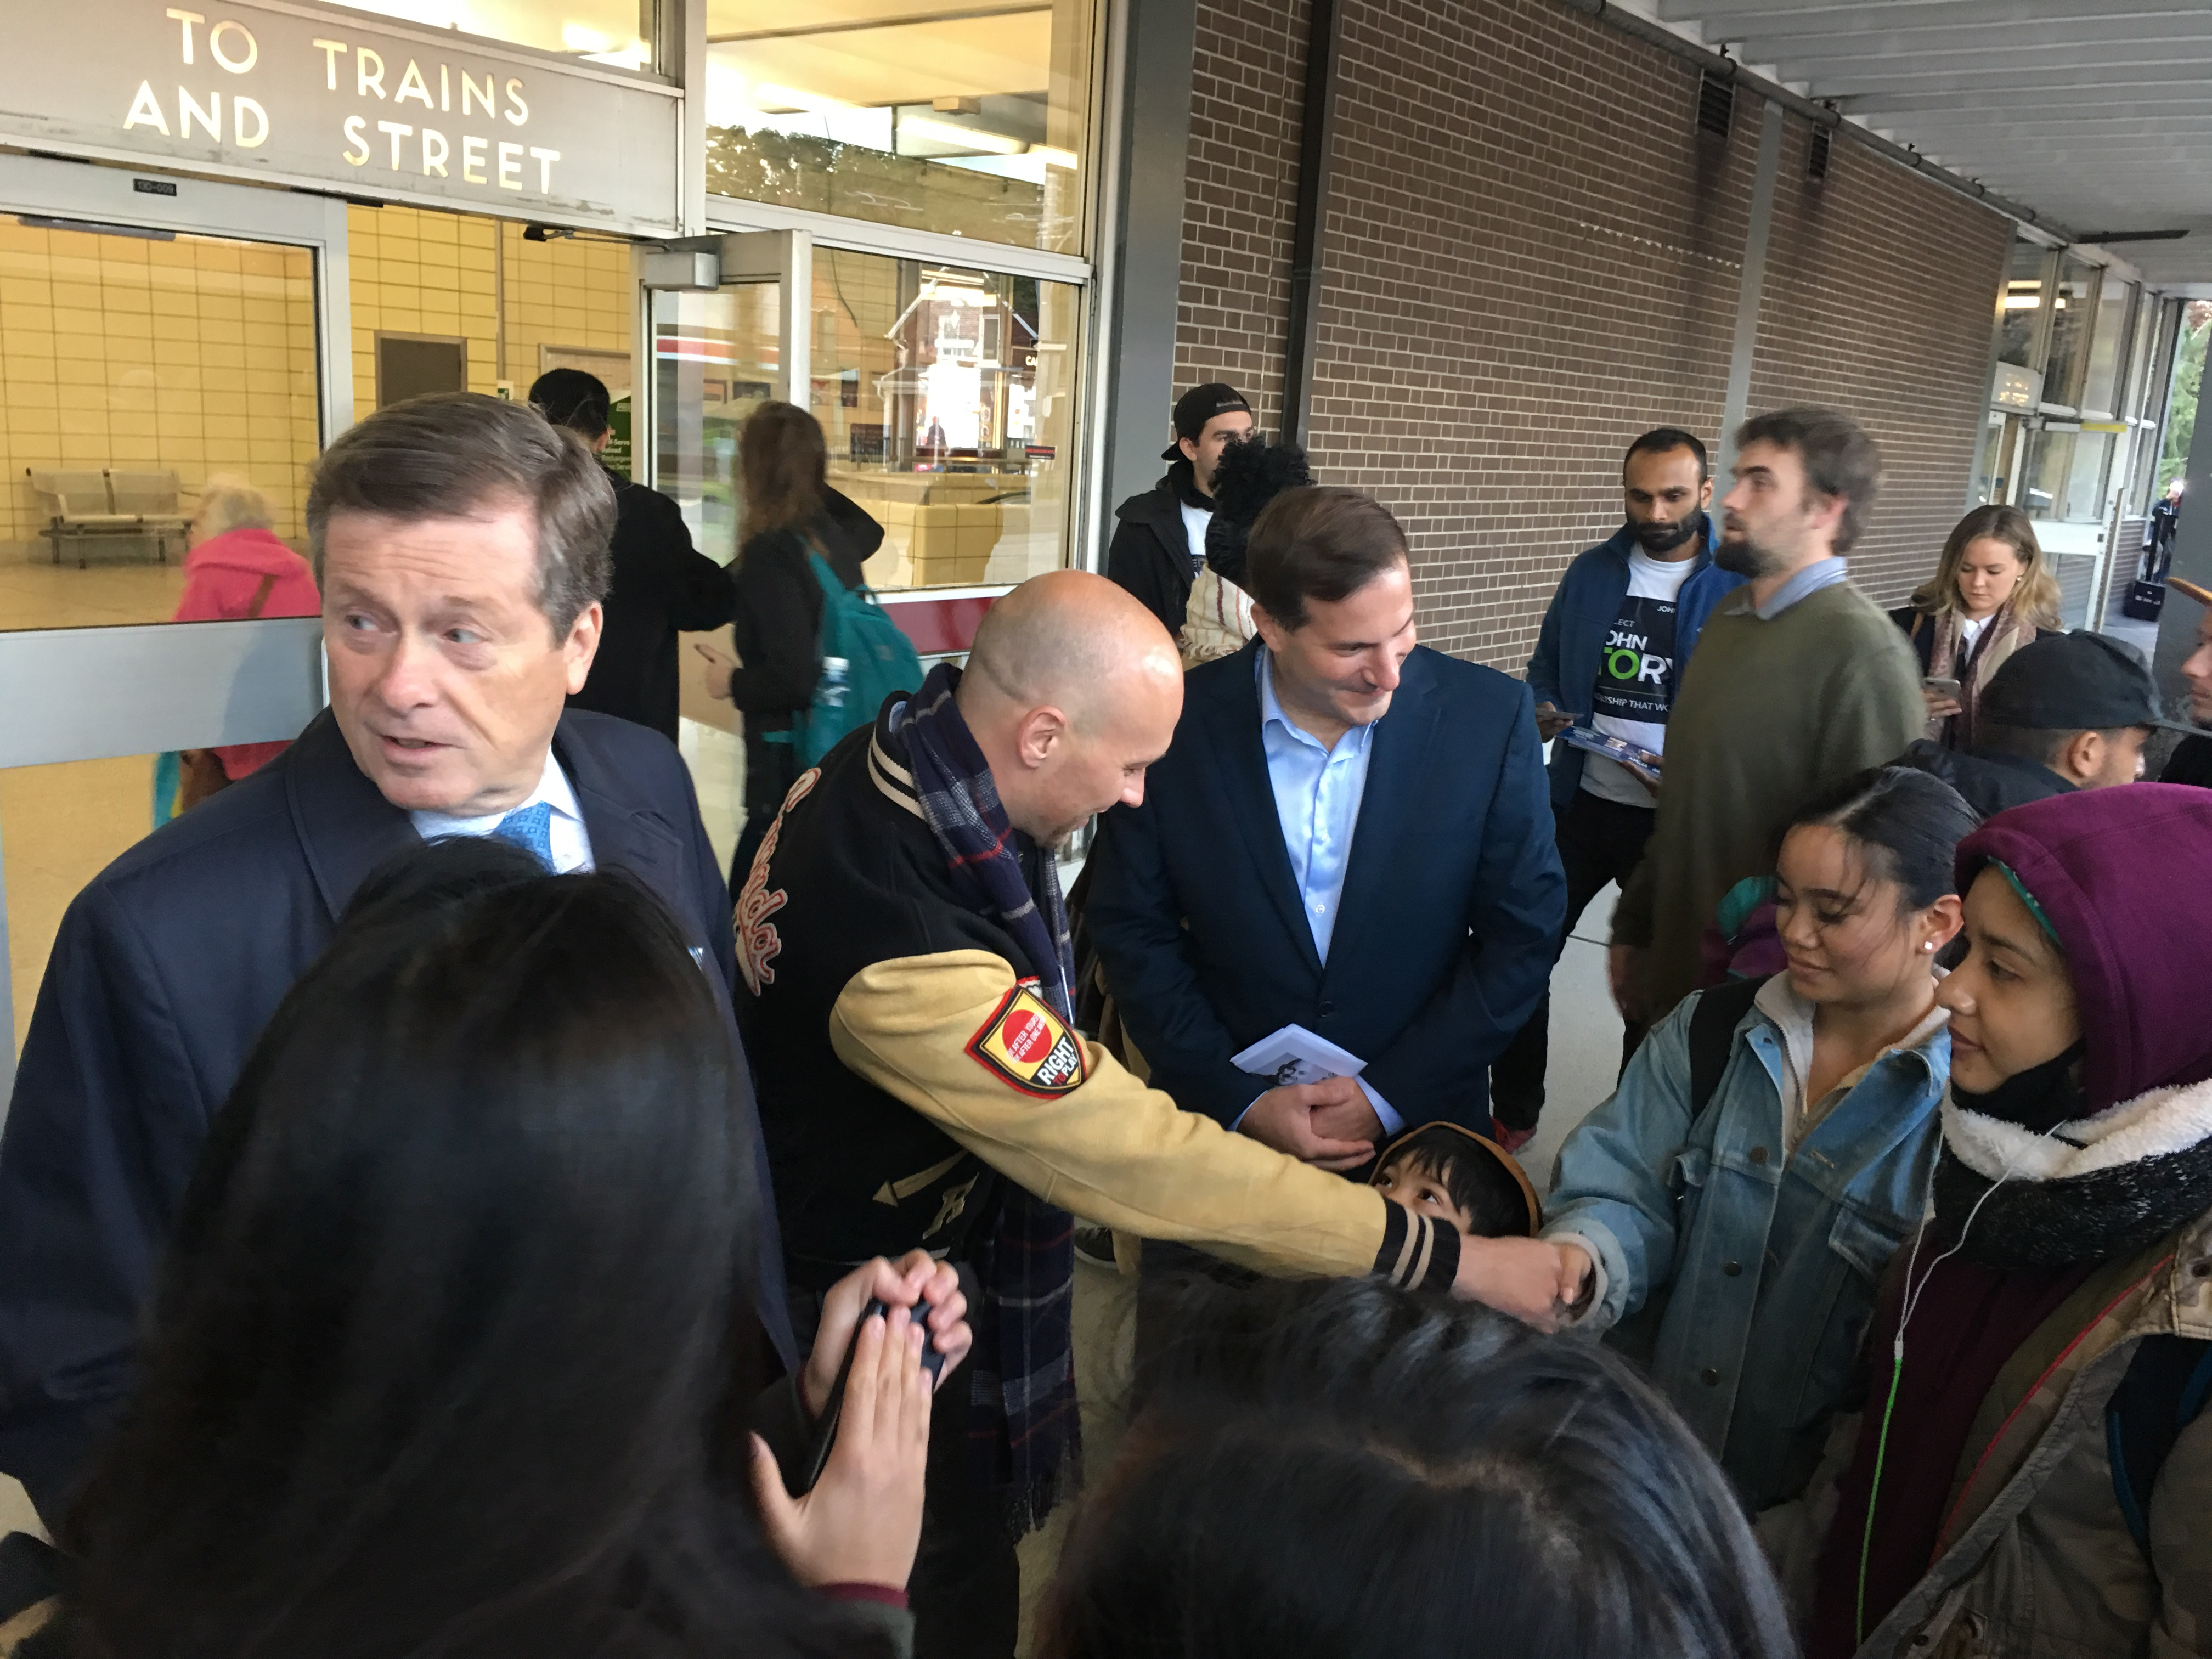 747 A M Mayor John Tory Looks Over His Shoulder While Meeting Potential Voters With